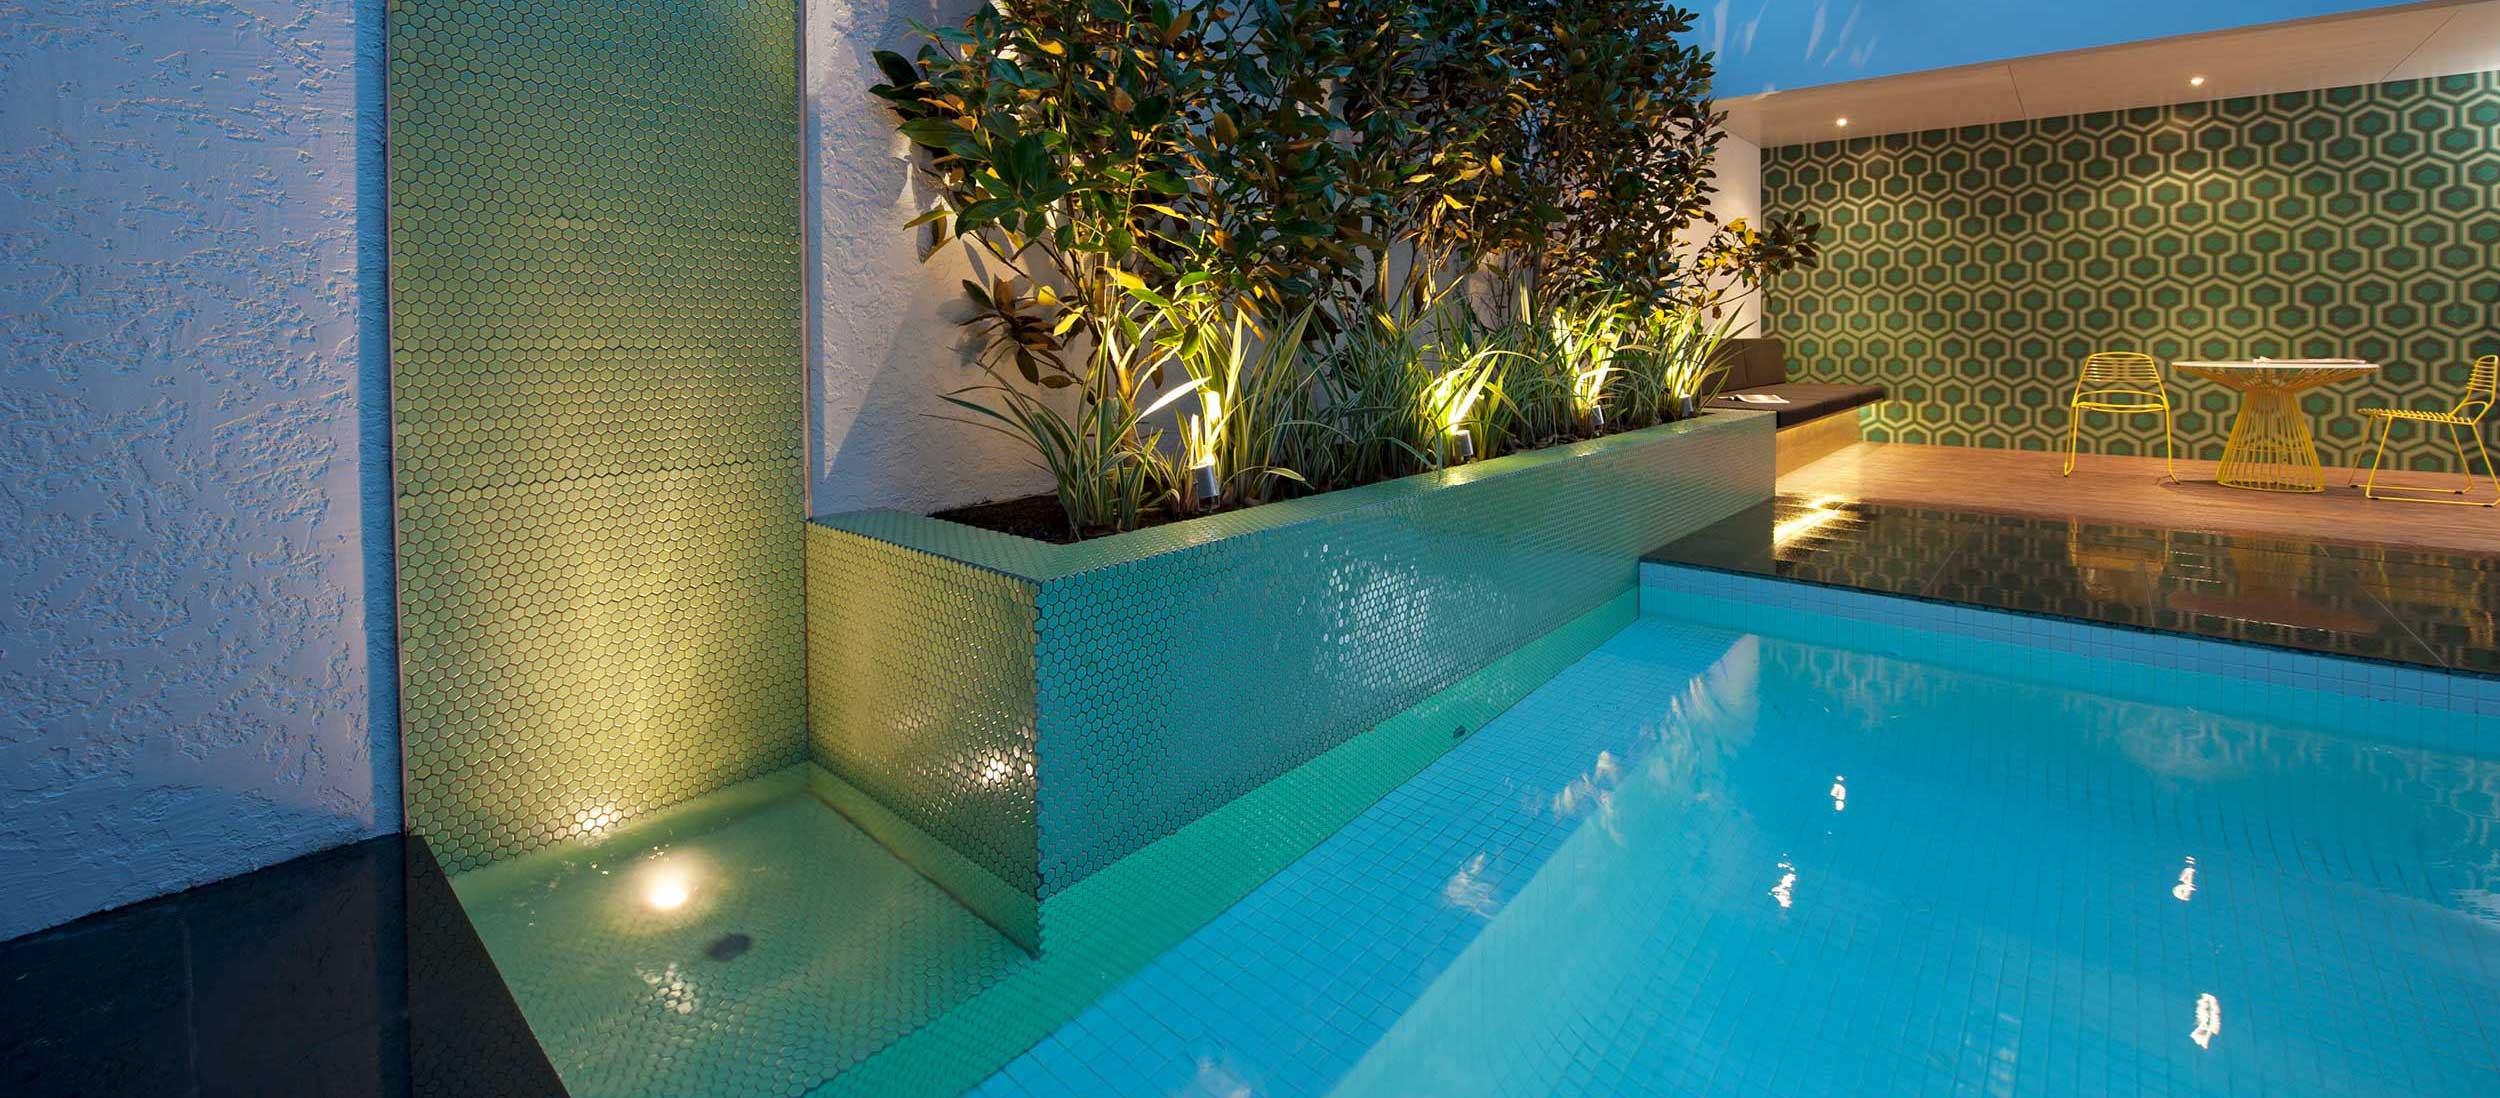 pool-design-brighton-01_Brighton-02_Feature-Image